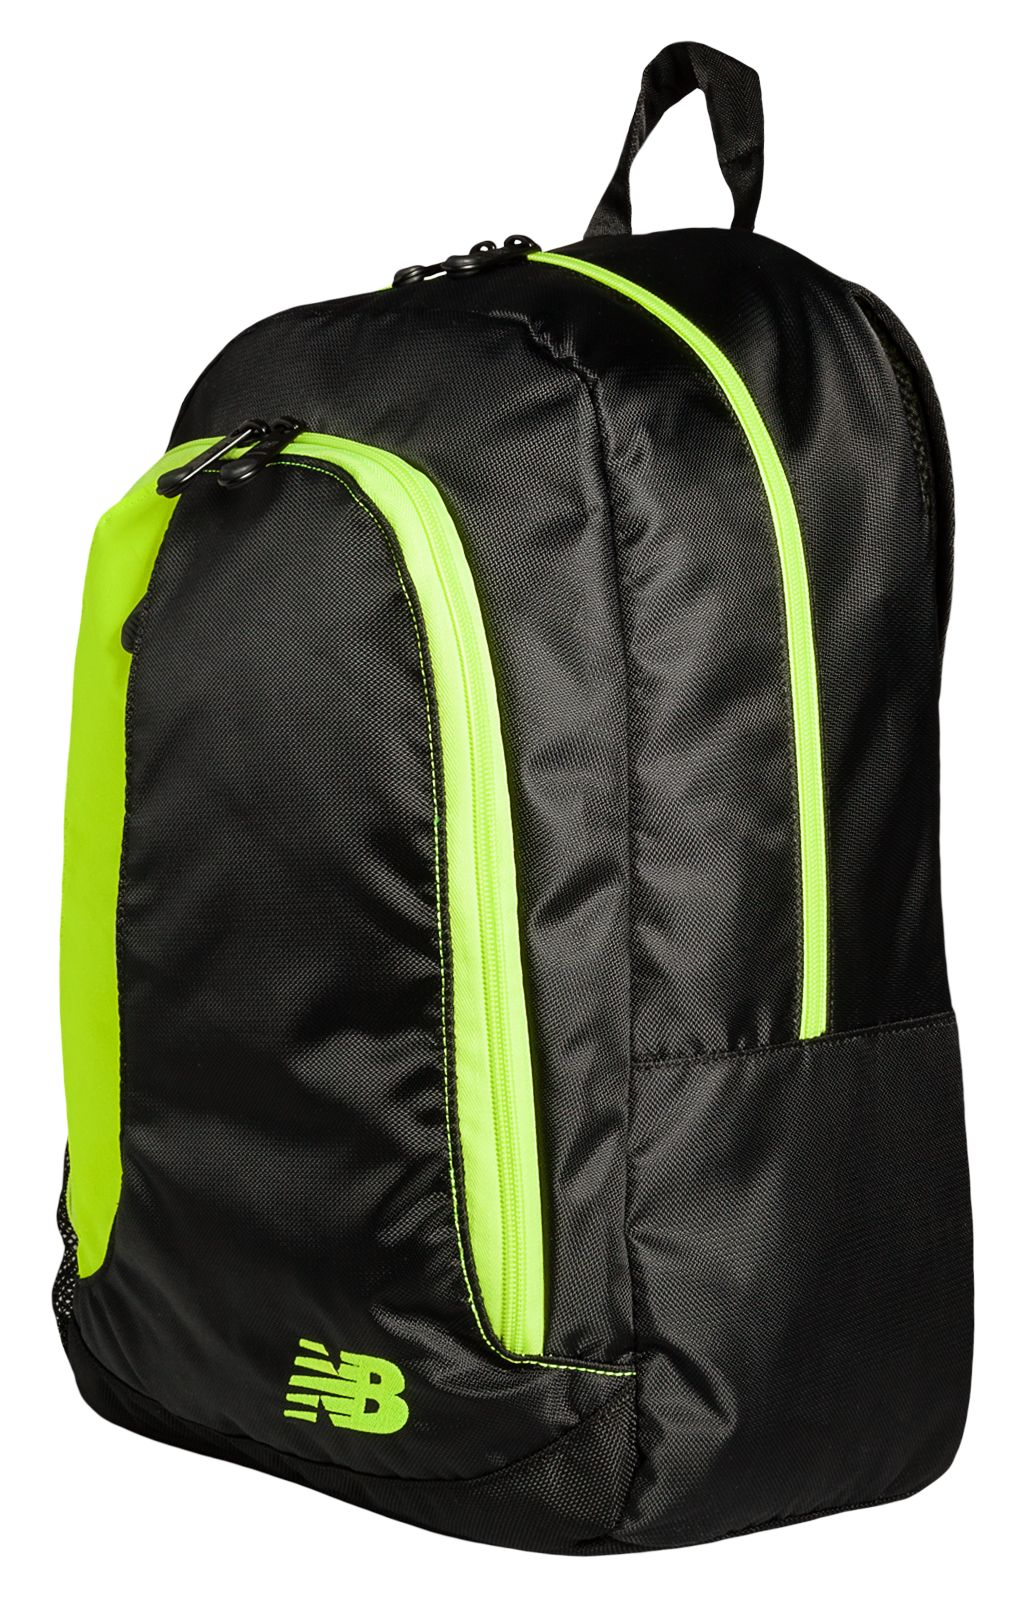 New Balance Passport Backpack Adult Black